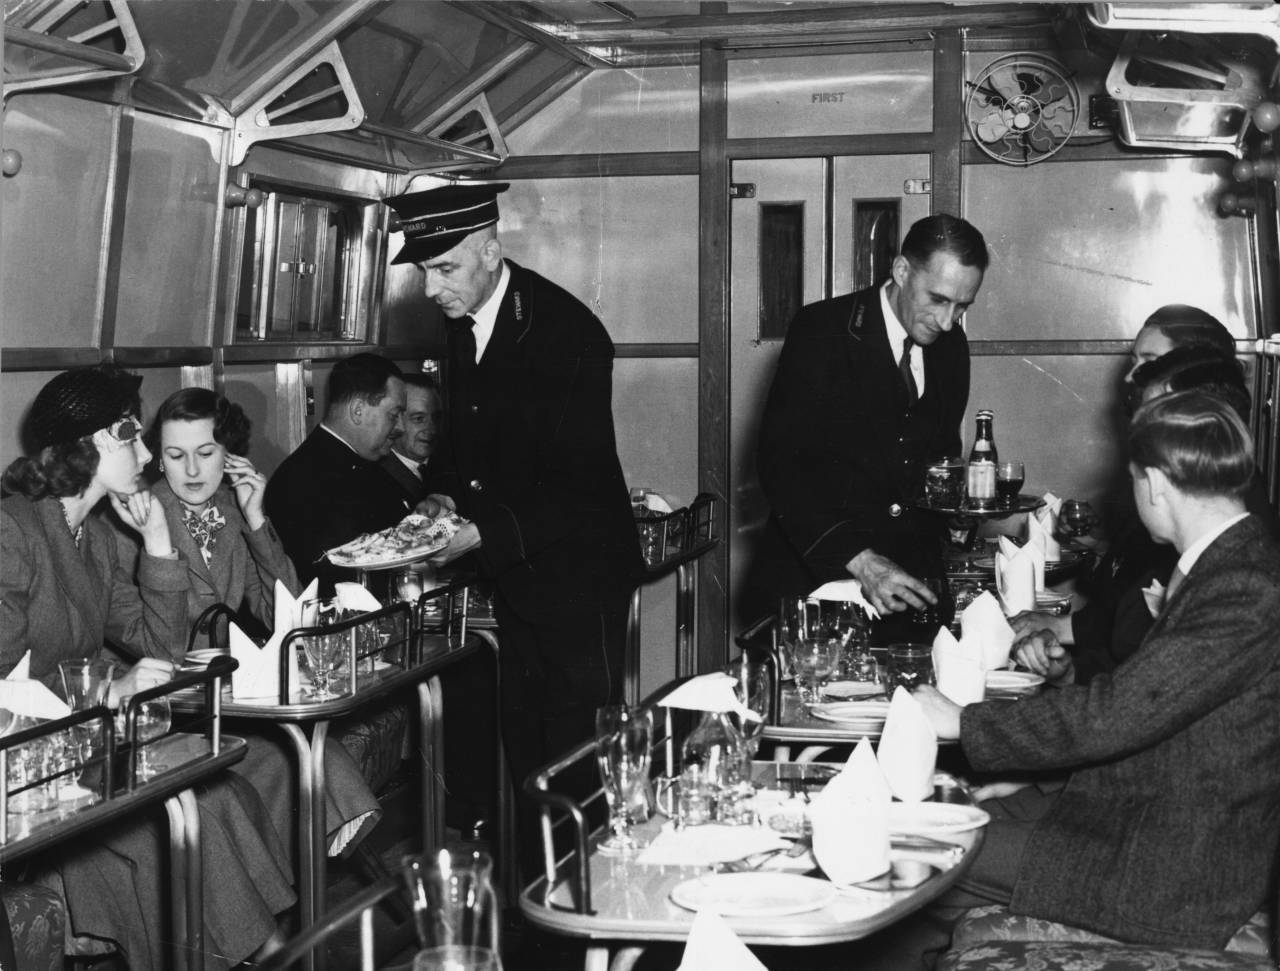 25th May 1949: A restaurant car on a British railways train in Waterloo Station, London. (Photo by Douglas Miller/Keystone/Getty Images)